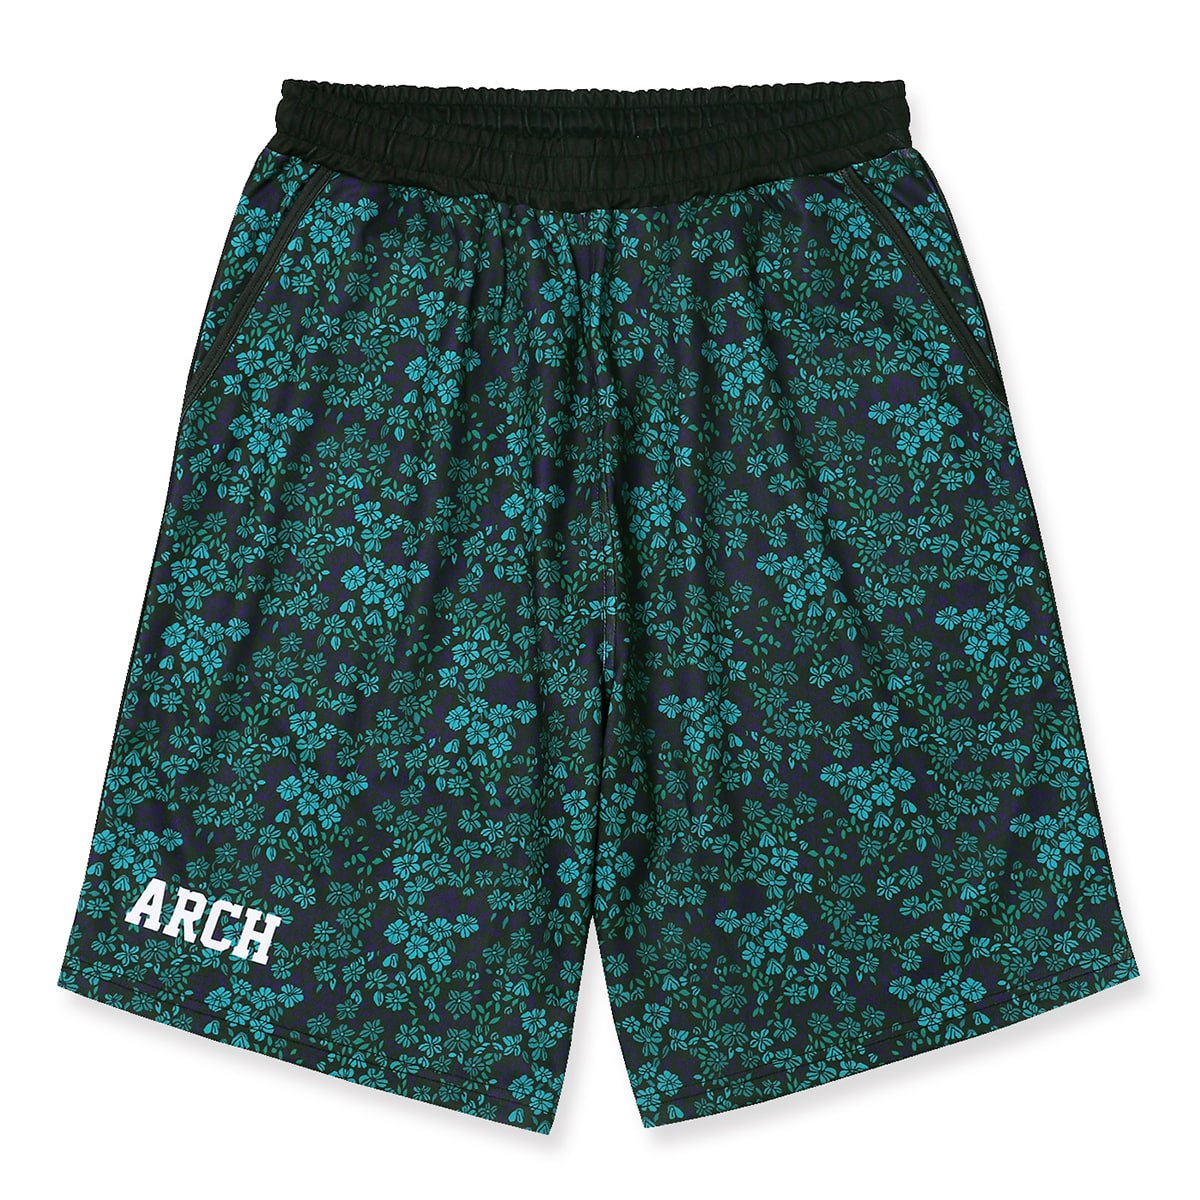 bloom shorts【teal】